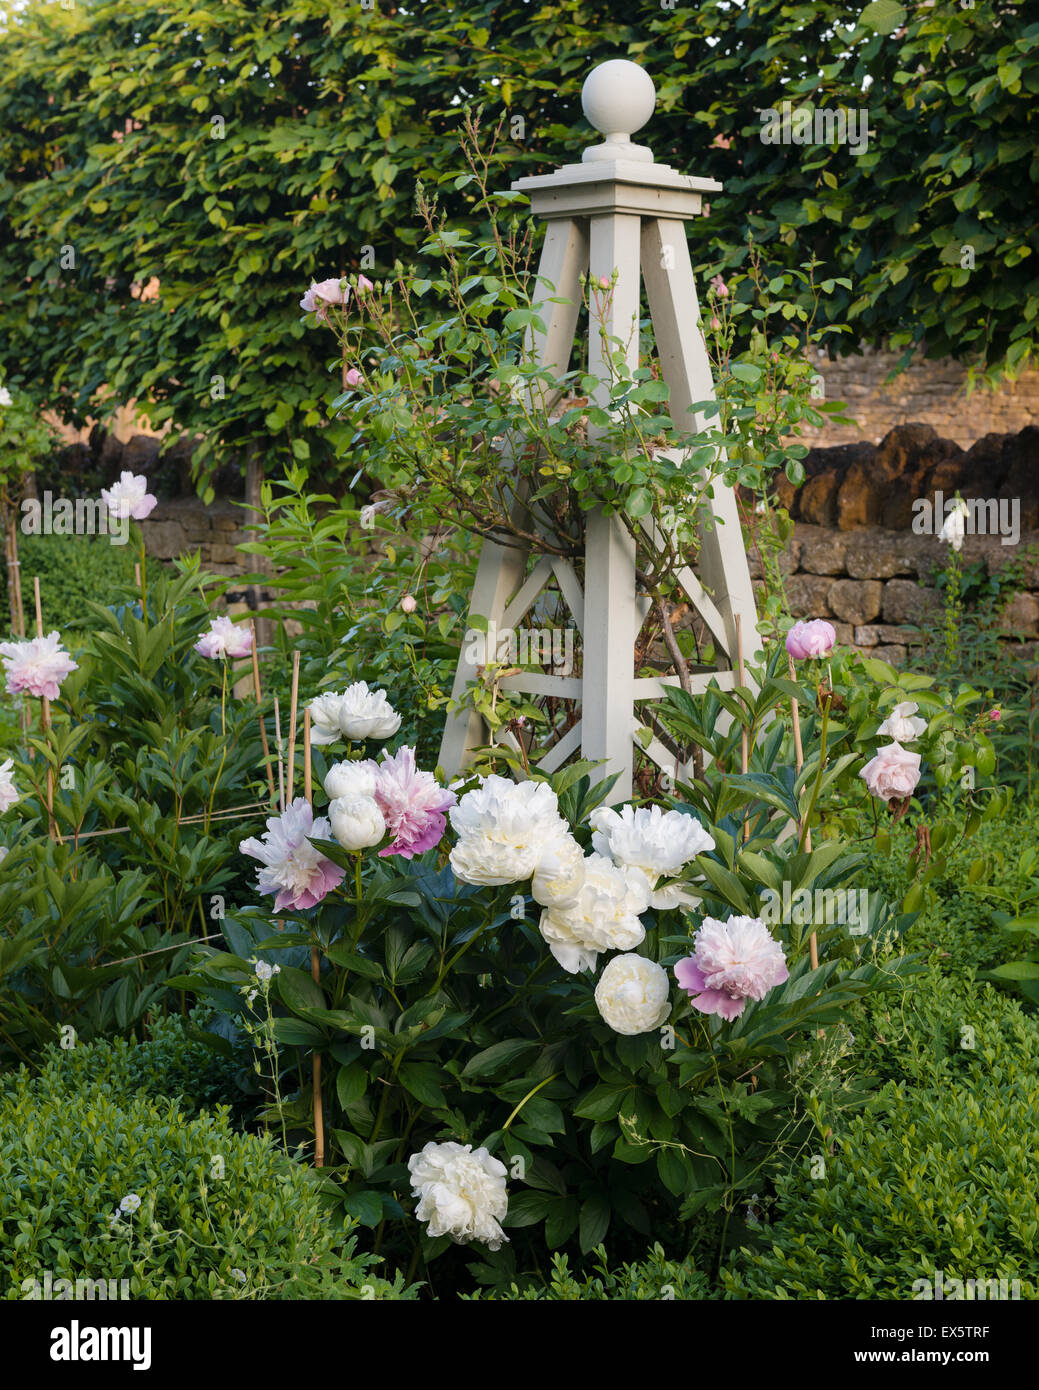 Peonies (Paeonia) and box hedge in country garden - Stock Image